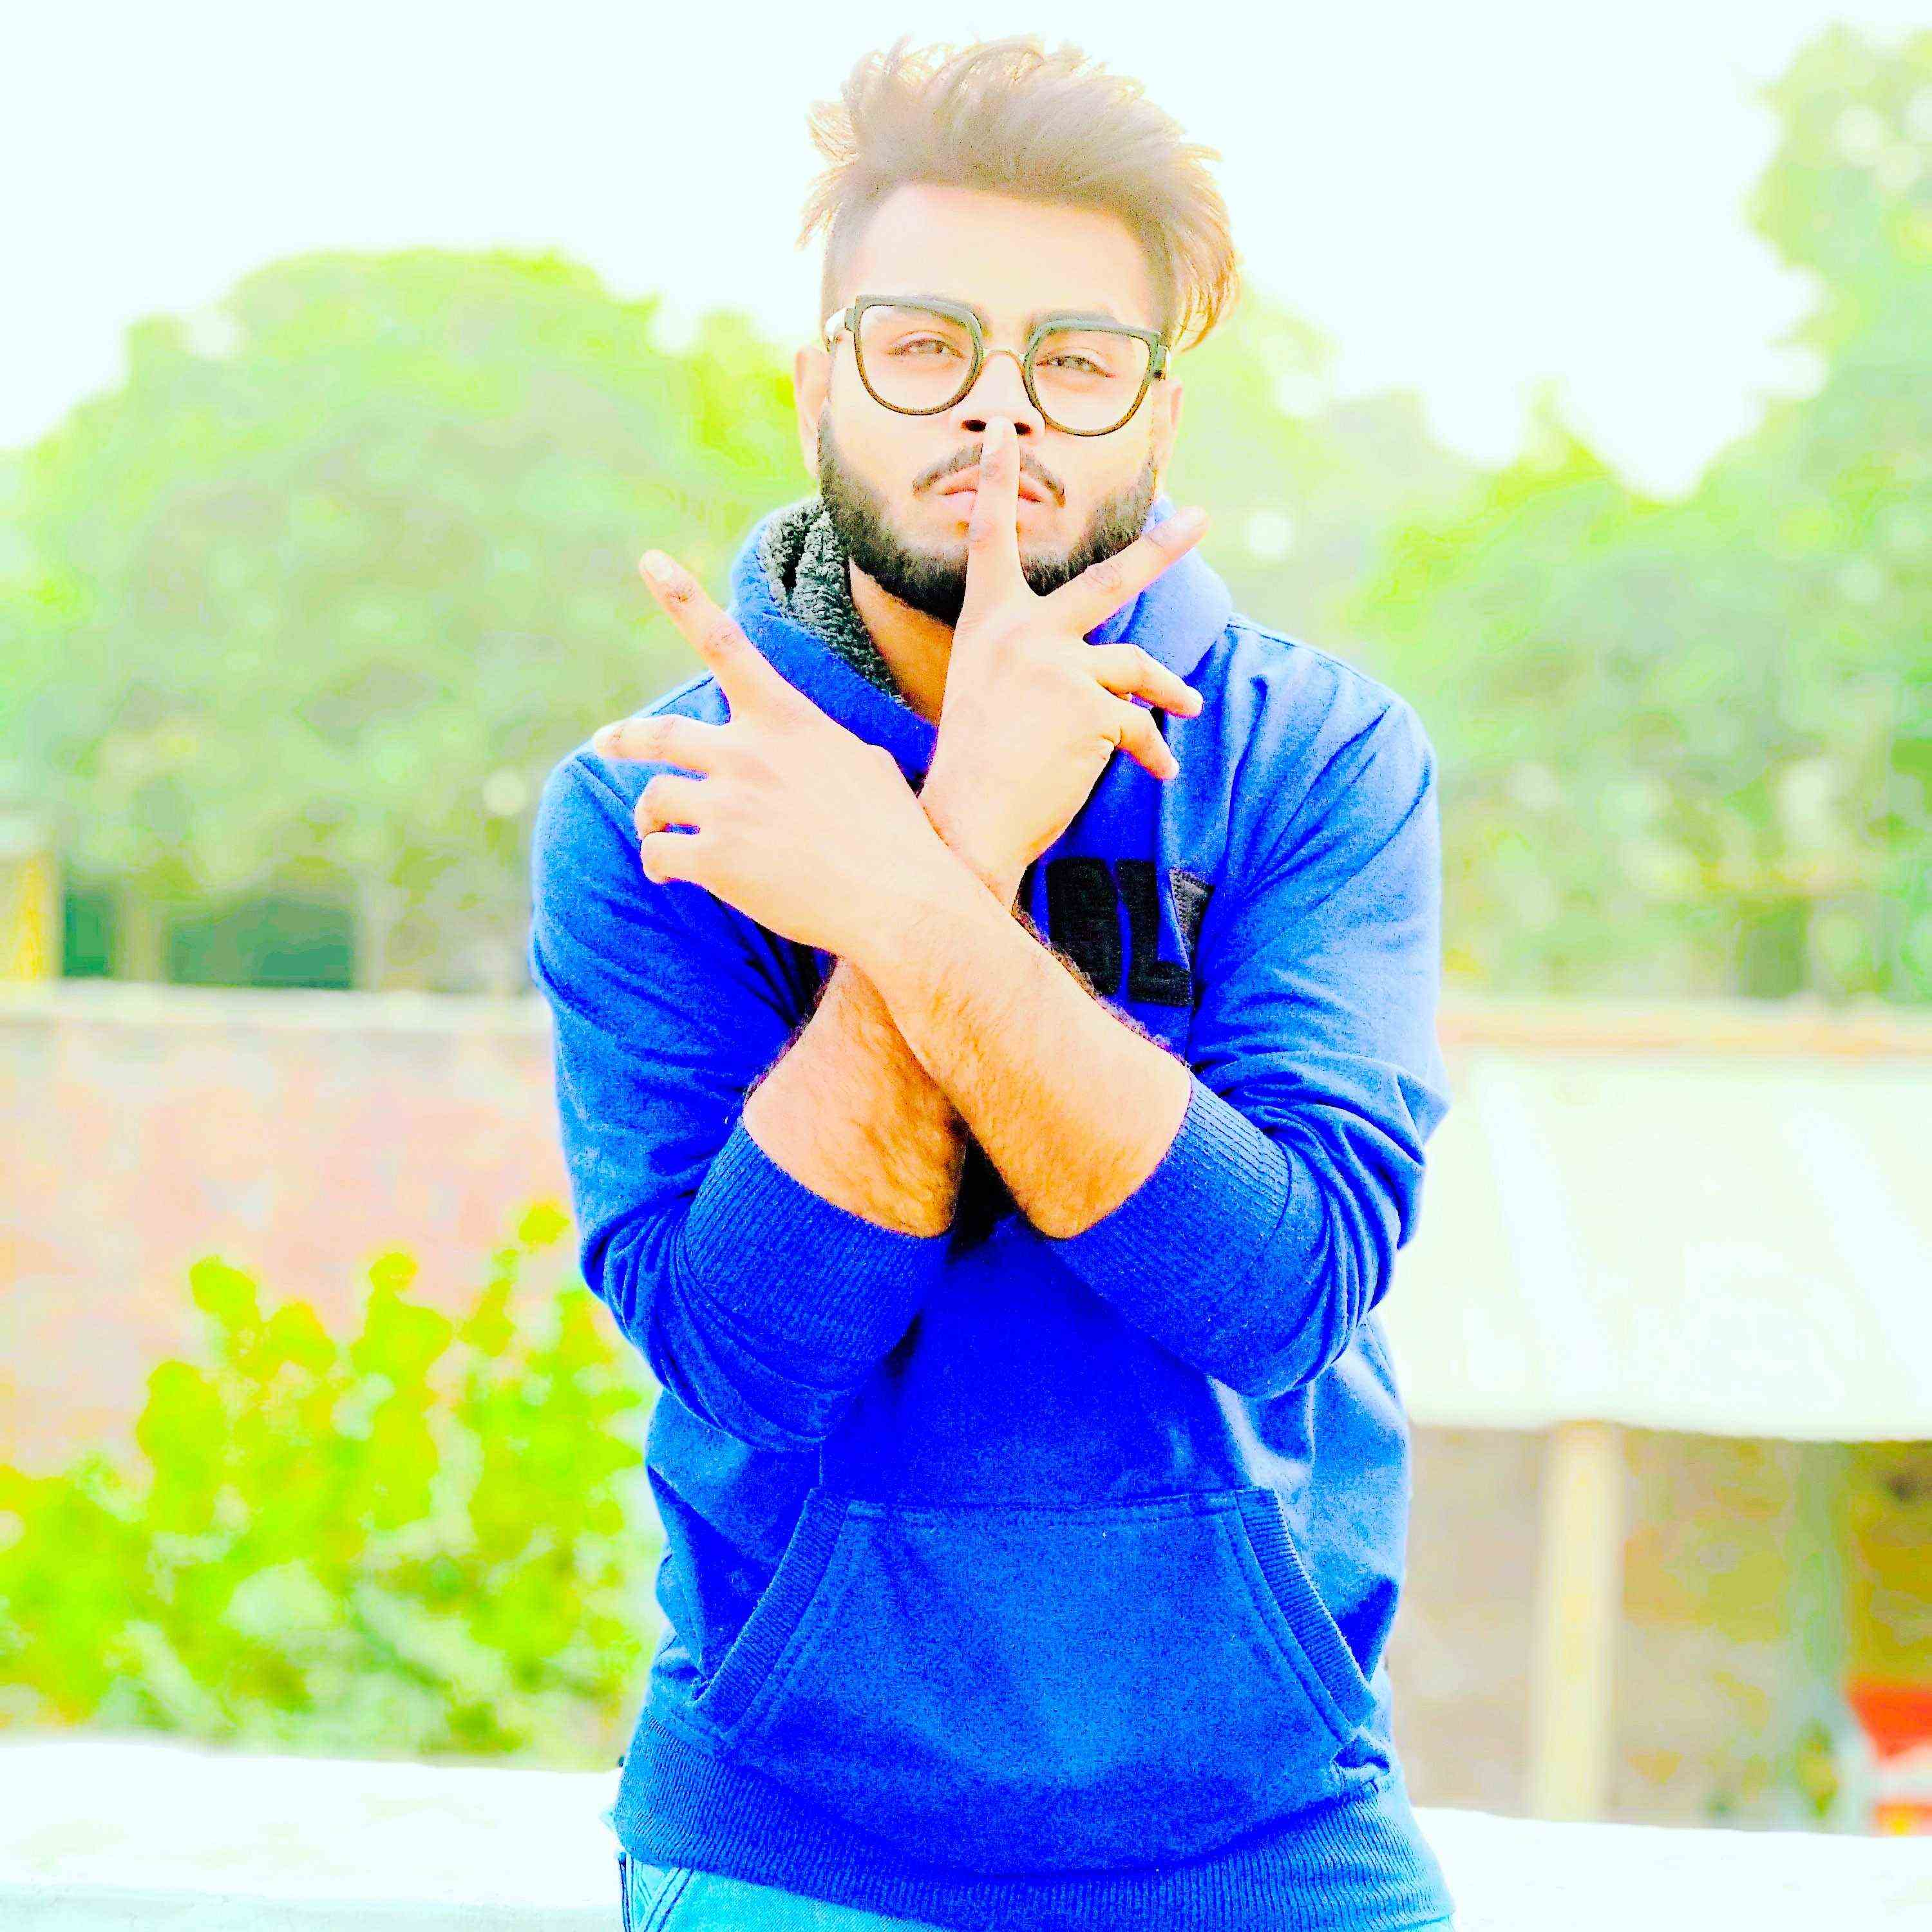 Abhi SolanKi I m a Dancer, Lyricist, Rapper and Poet Too. MtlB MultiTalented Hoon To Follow Karona Fir